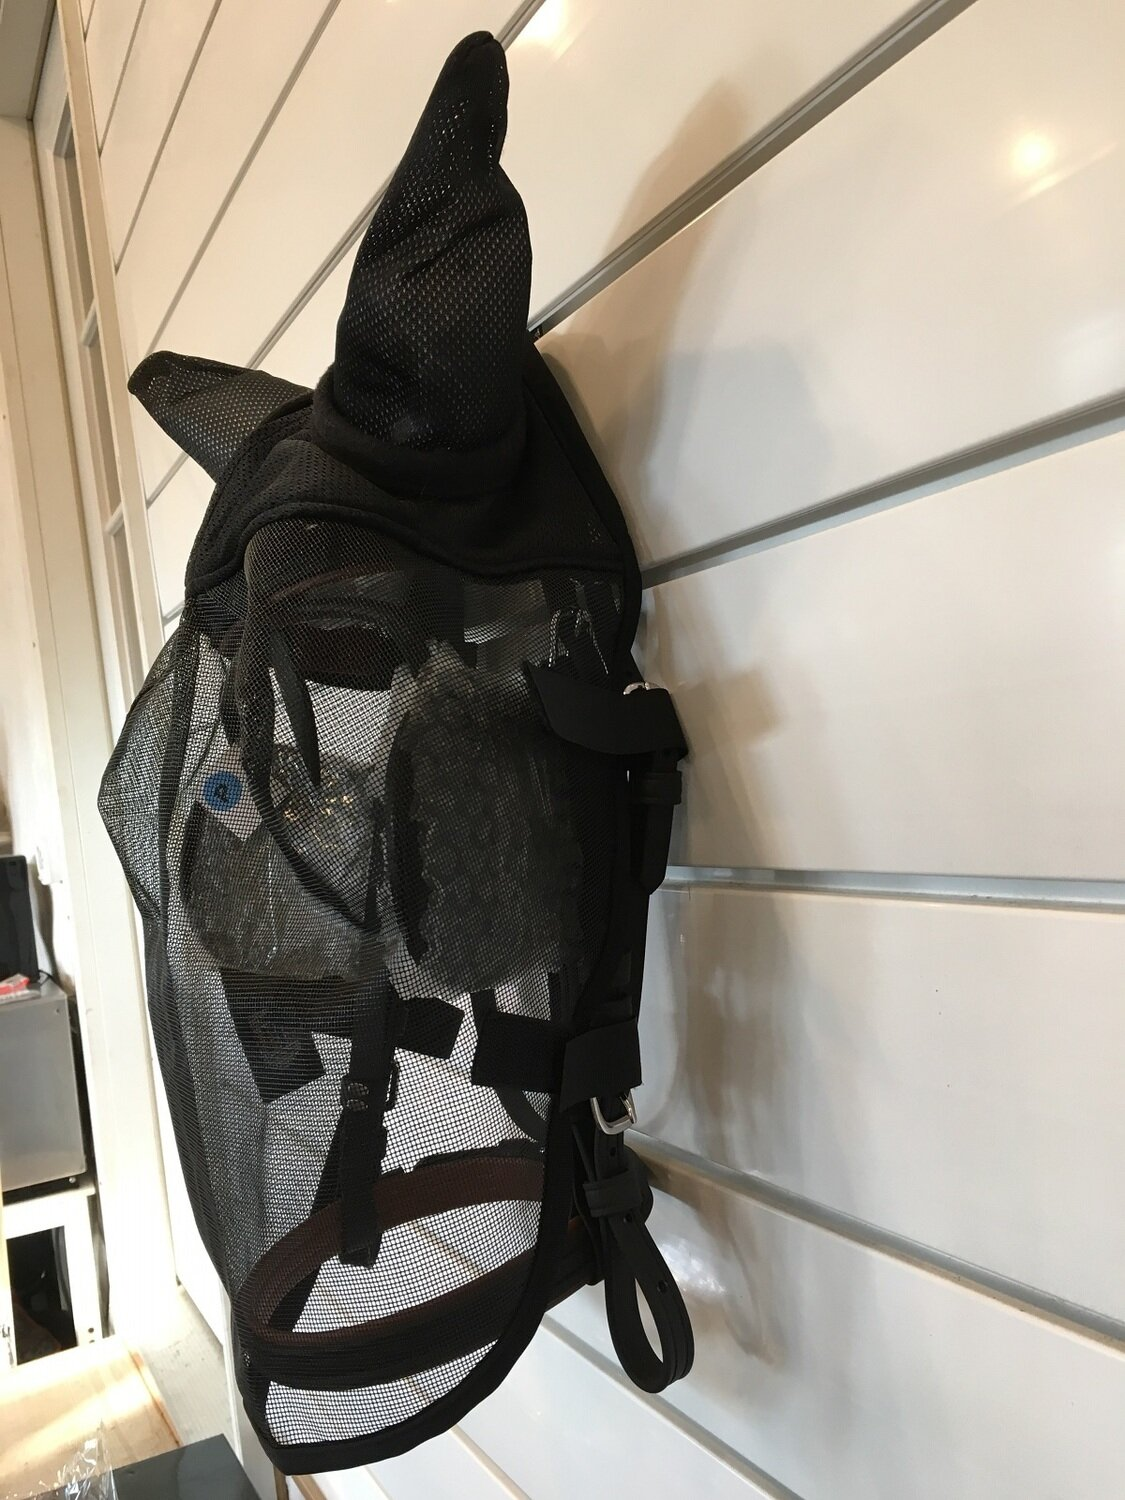 Over Bridle Fly Mask w/ears